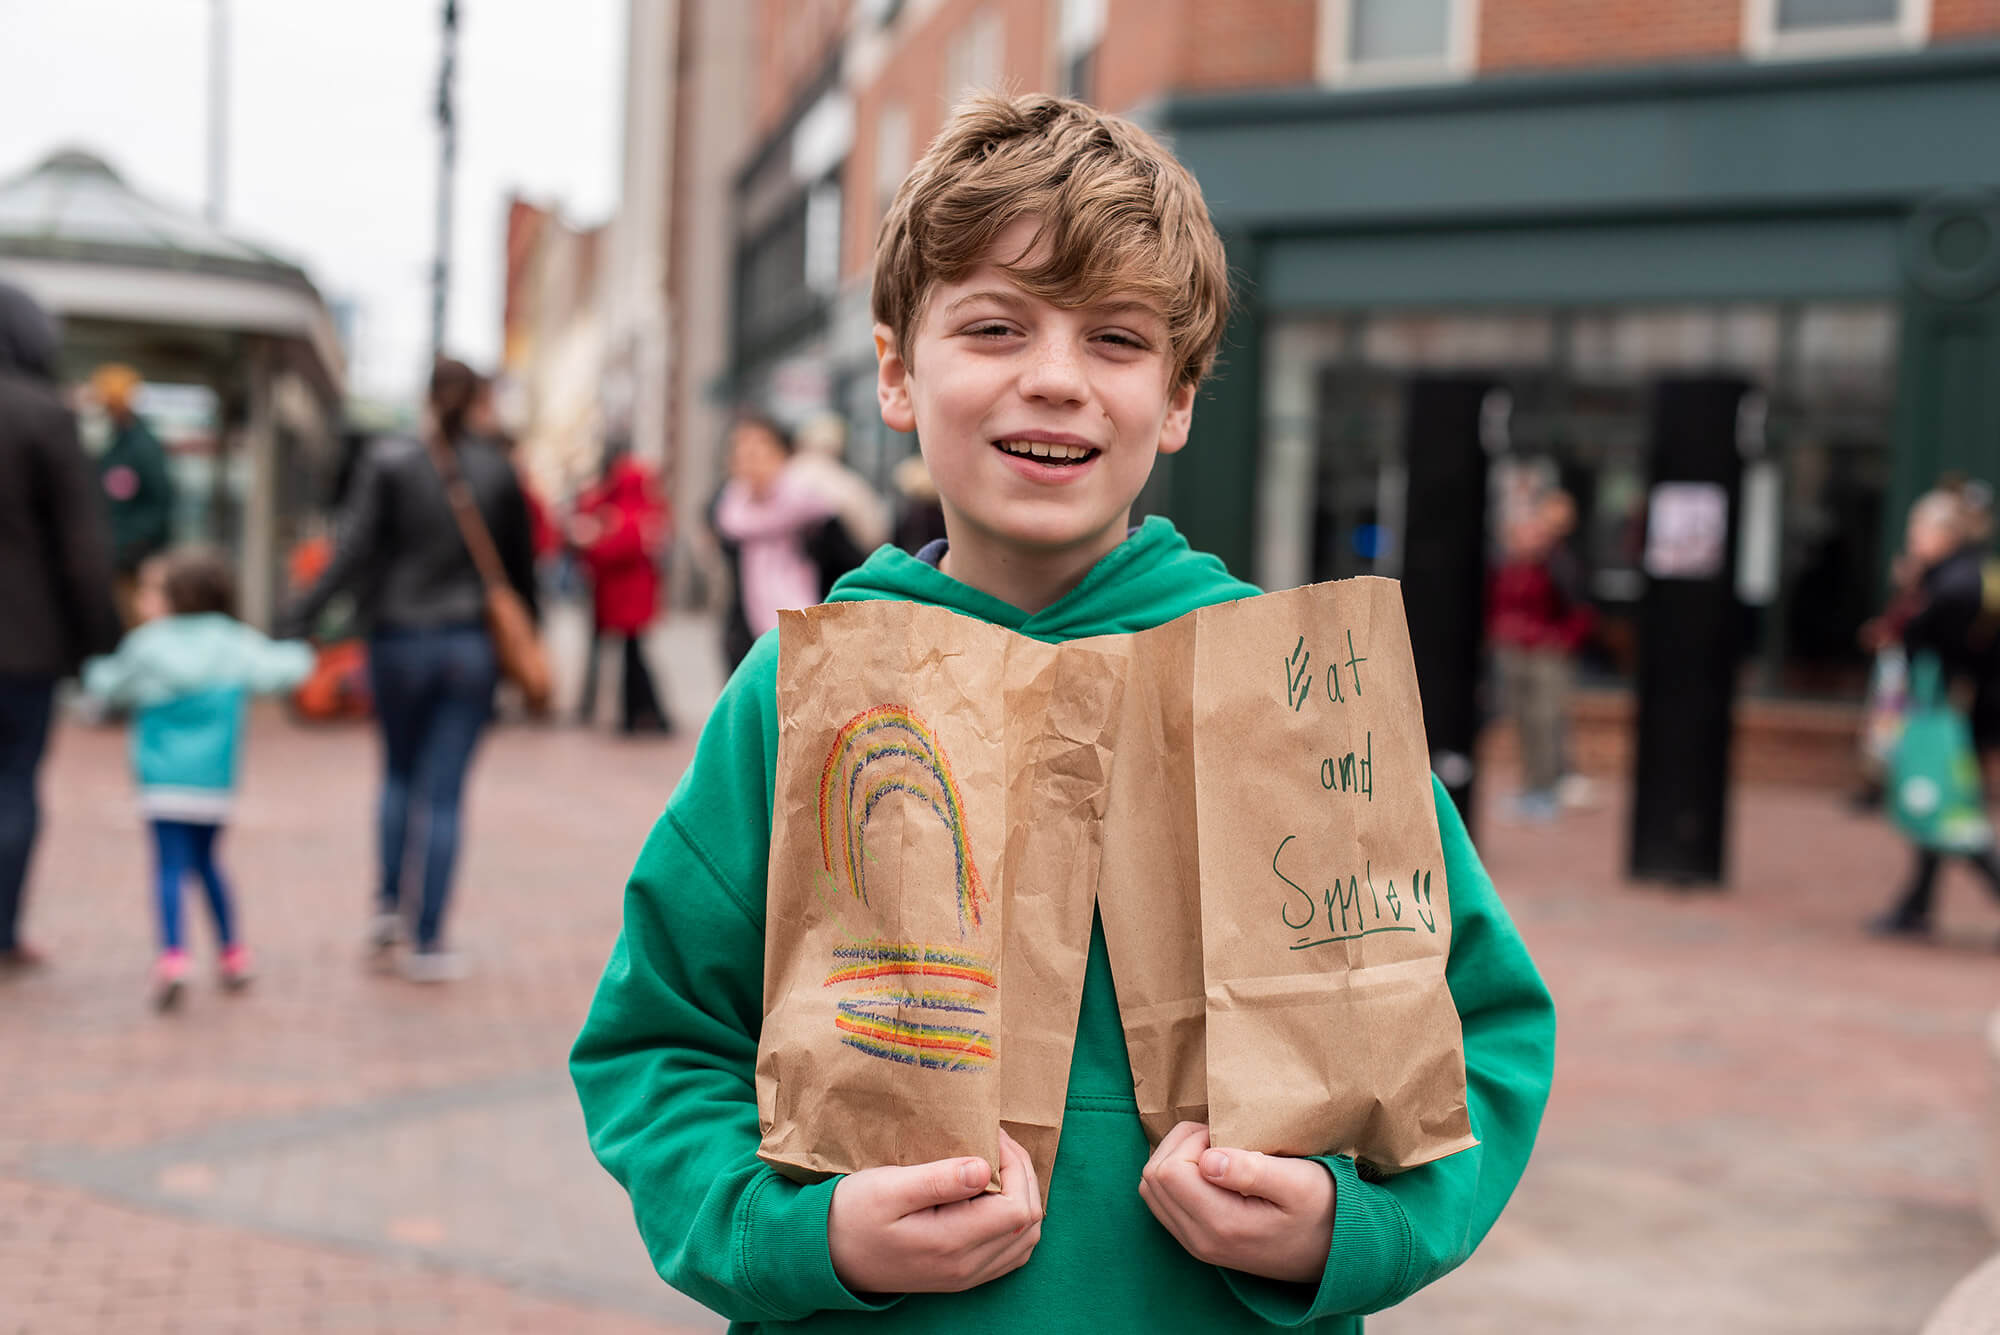 Boy smiling and holding two paper bags